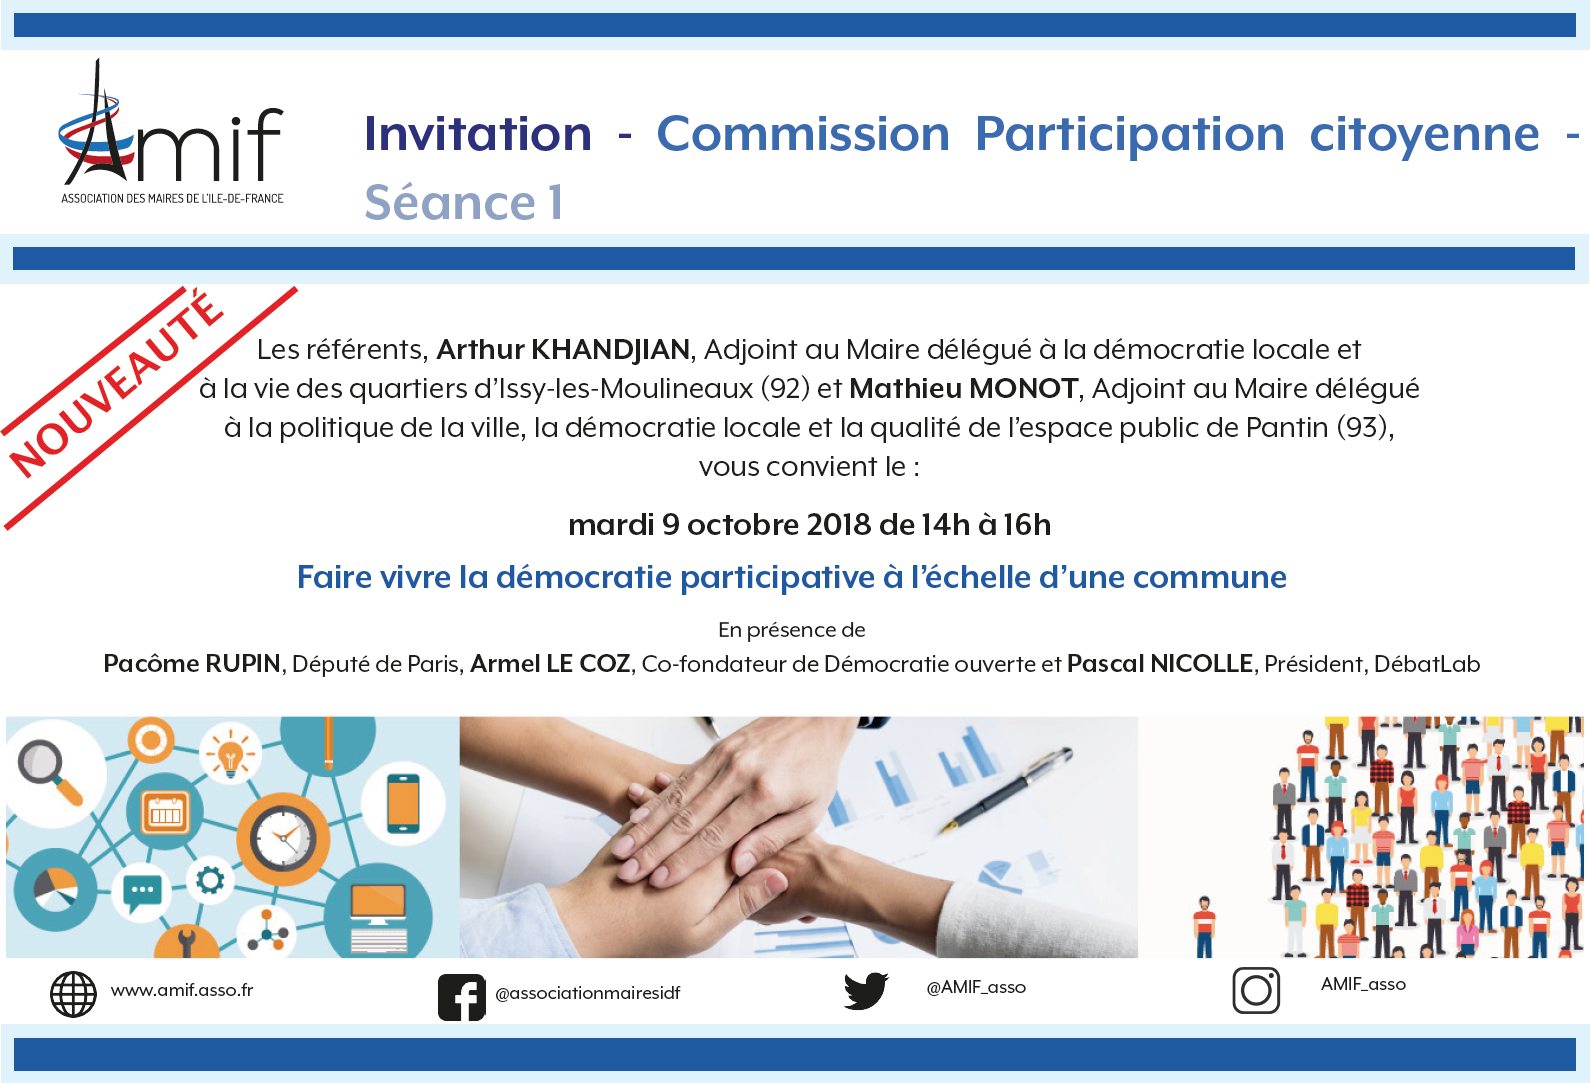 CommissionParticipationCitoyenneSeance109octobre2018v5